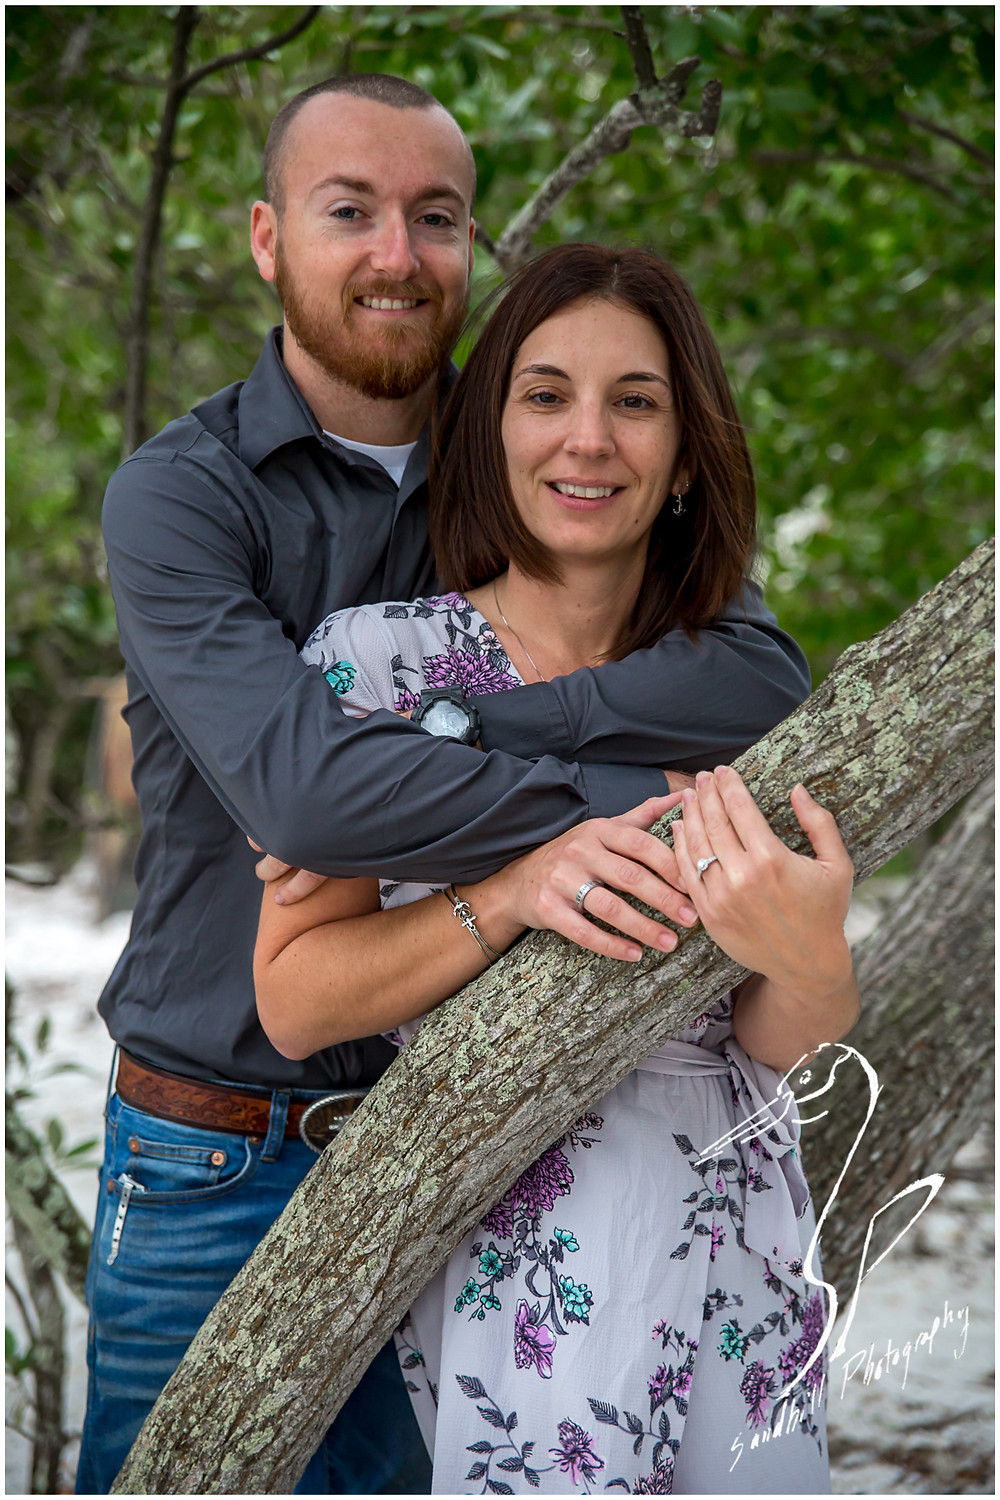 Bradenton Engagement Photographer, engaged couple embrace in the trees at De Soto National Memorial